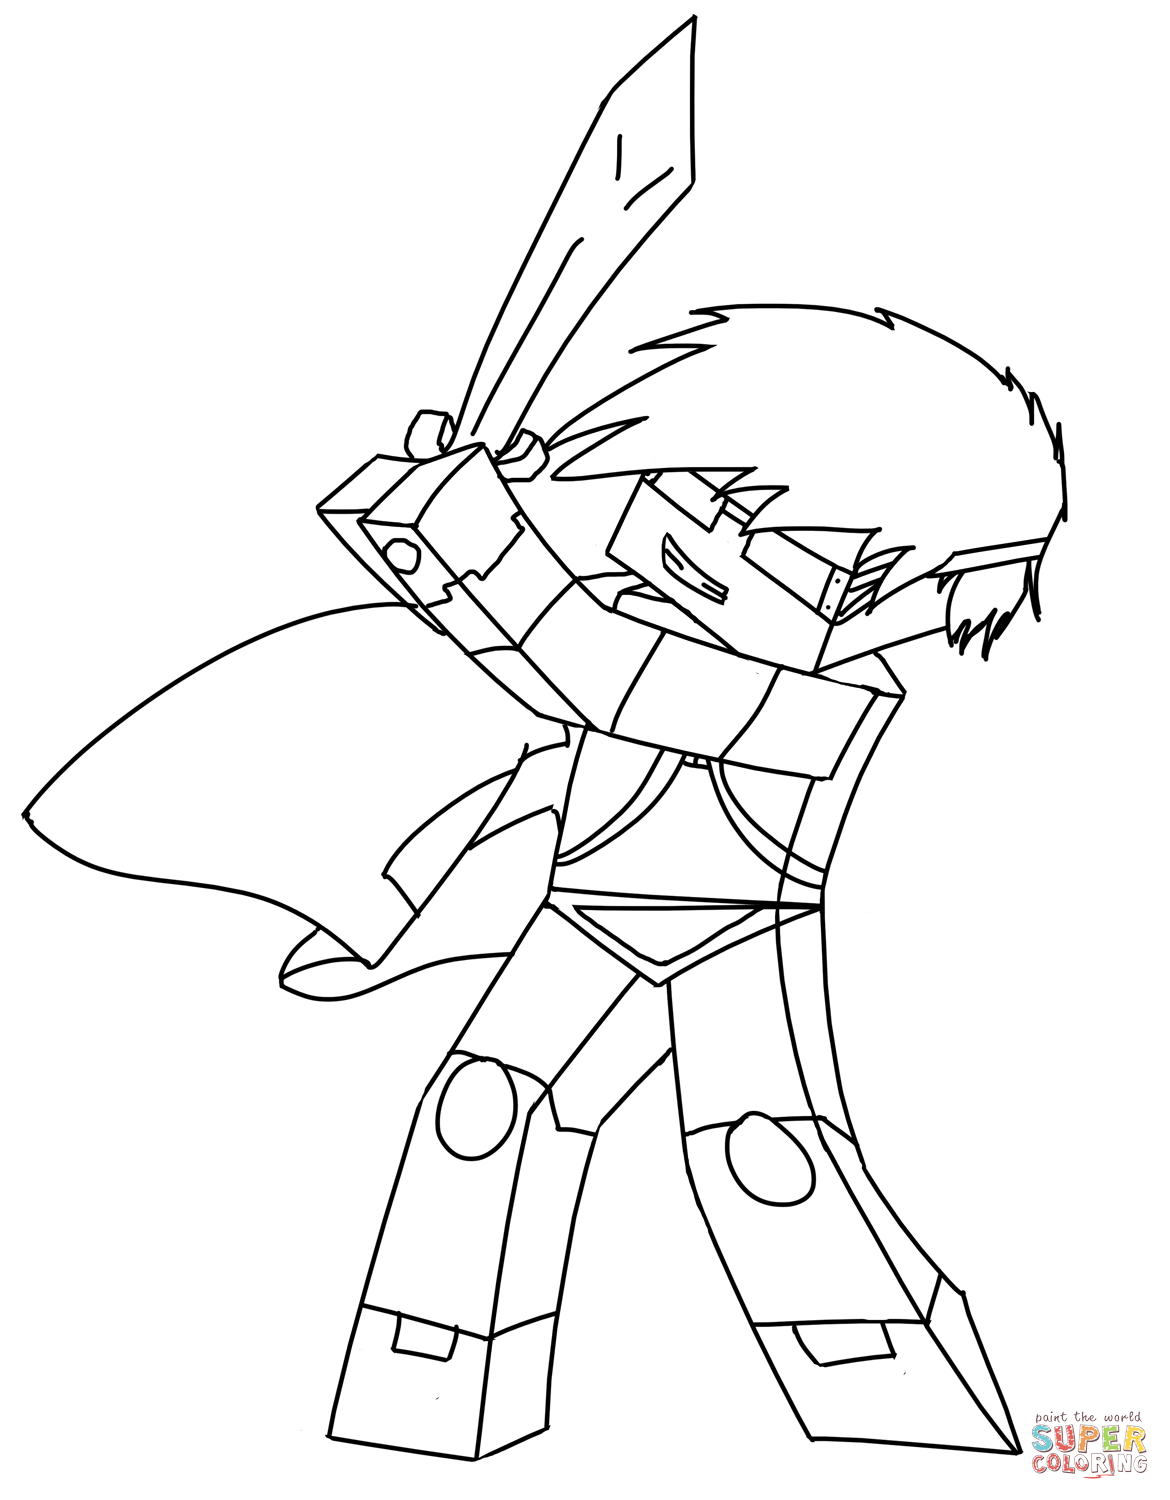 Skydoesminecraft From Minecraft Coloring Page Free Coloring Pages Online